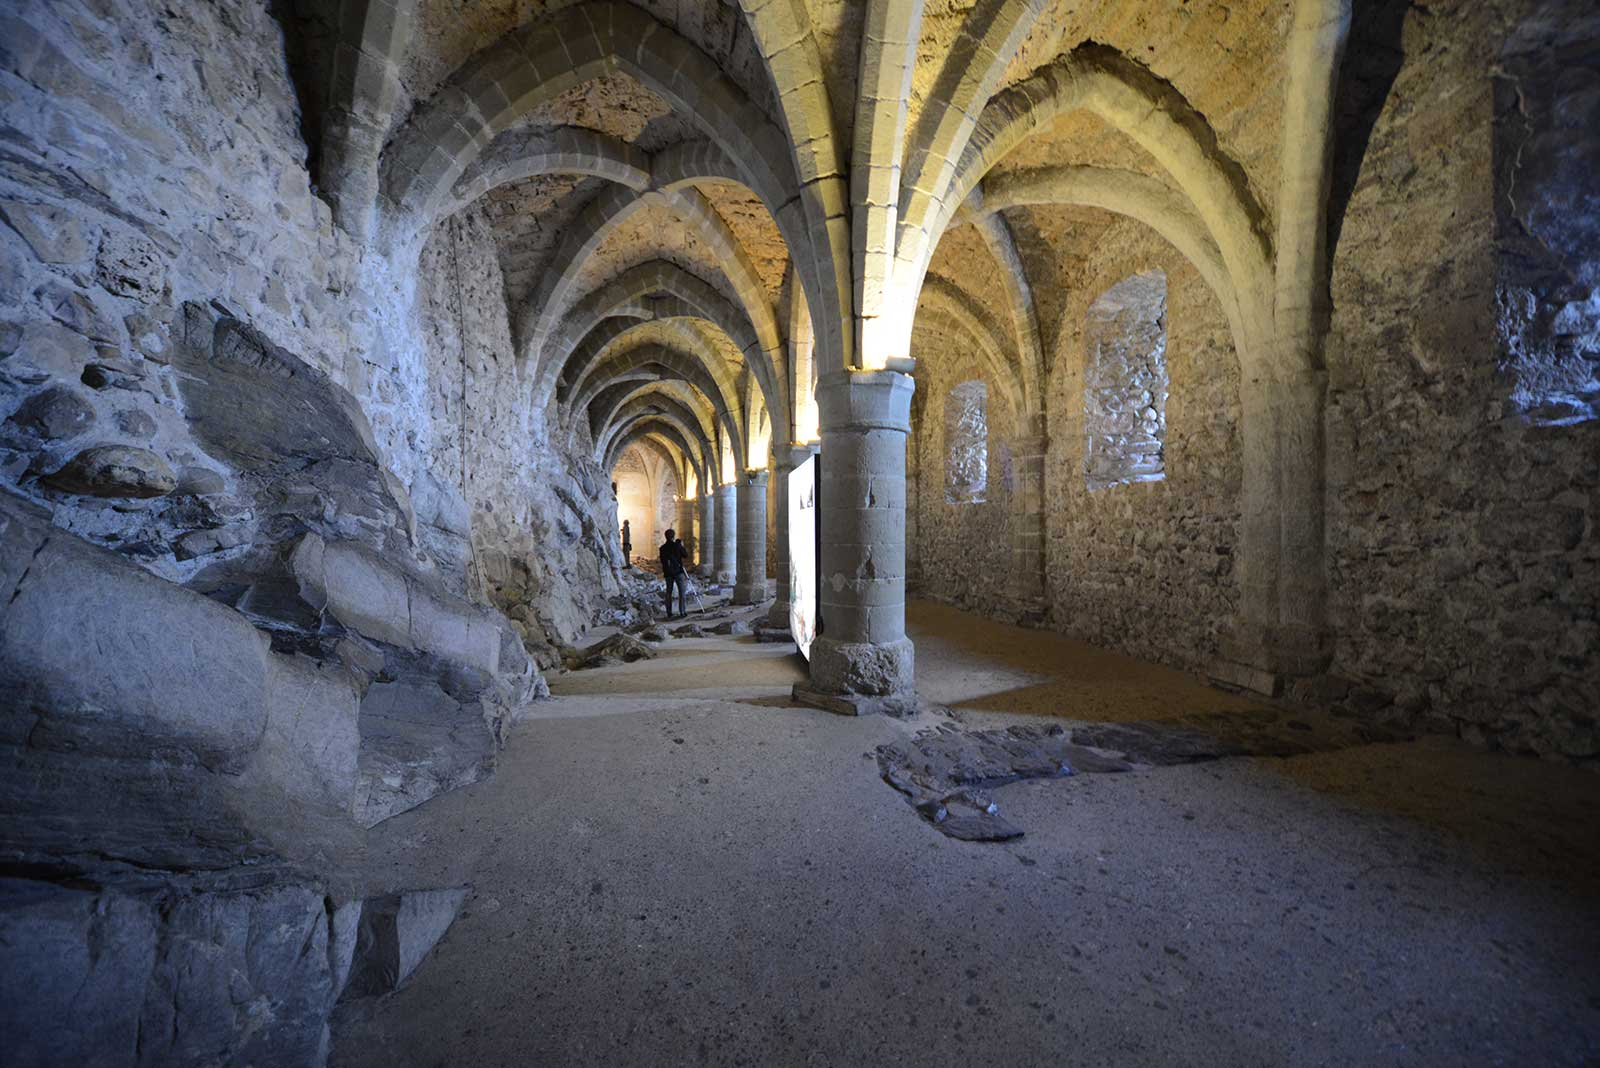 The cellar of Castle Chillon, which served as a dungeon for many years.